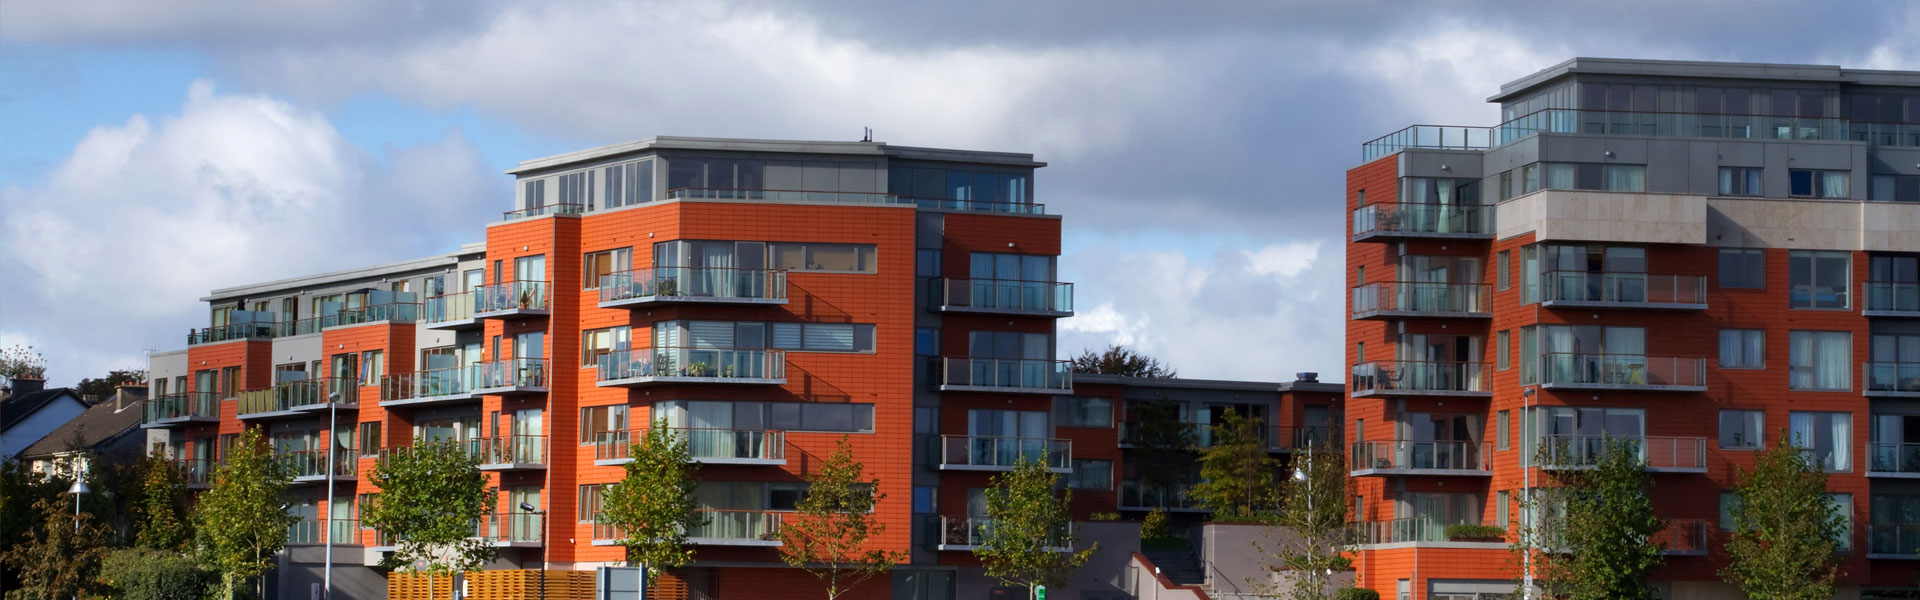 professional Commercial property management in Kildalkey